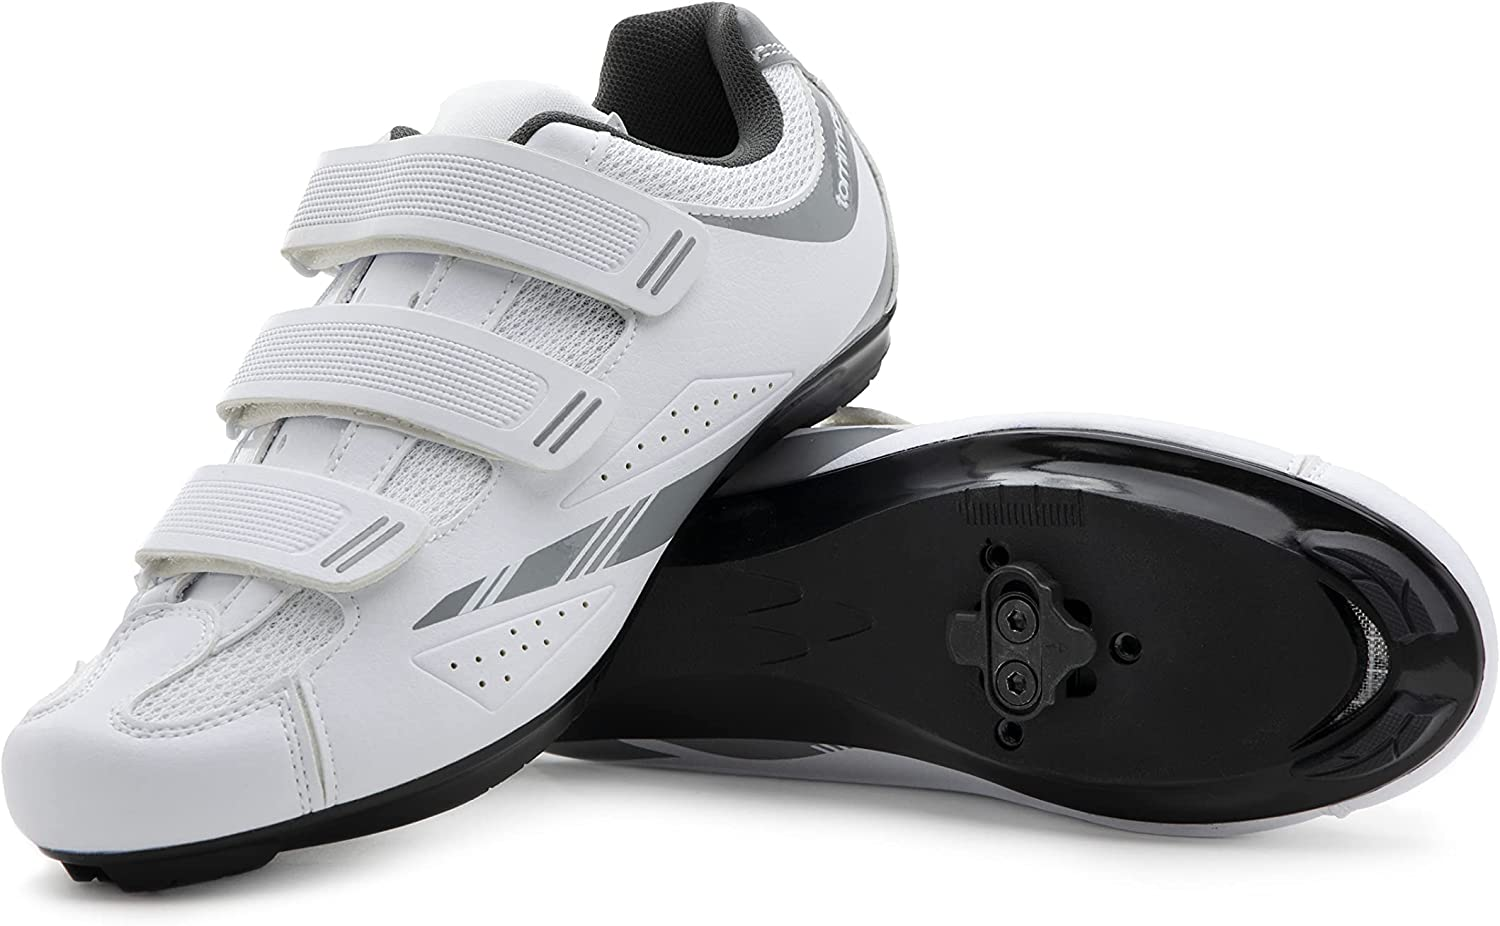 Tommaso Pista Women's Indoor Cycling Bundle Max 45% OFF Shoe Ready Max 74% OFF w